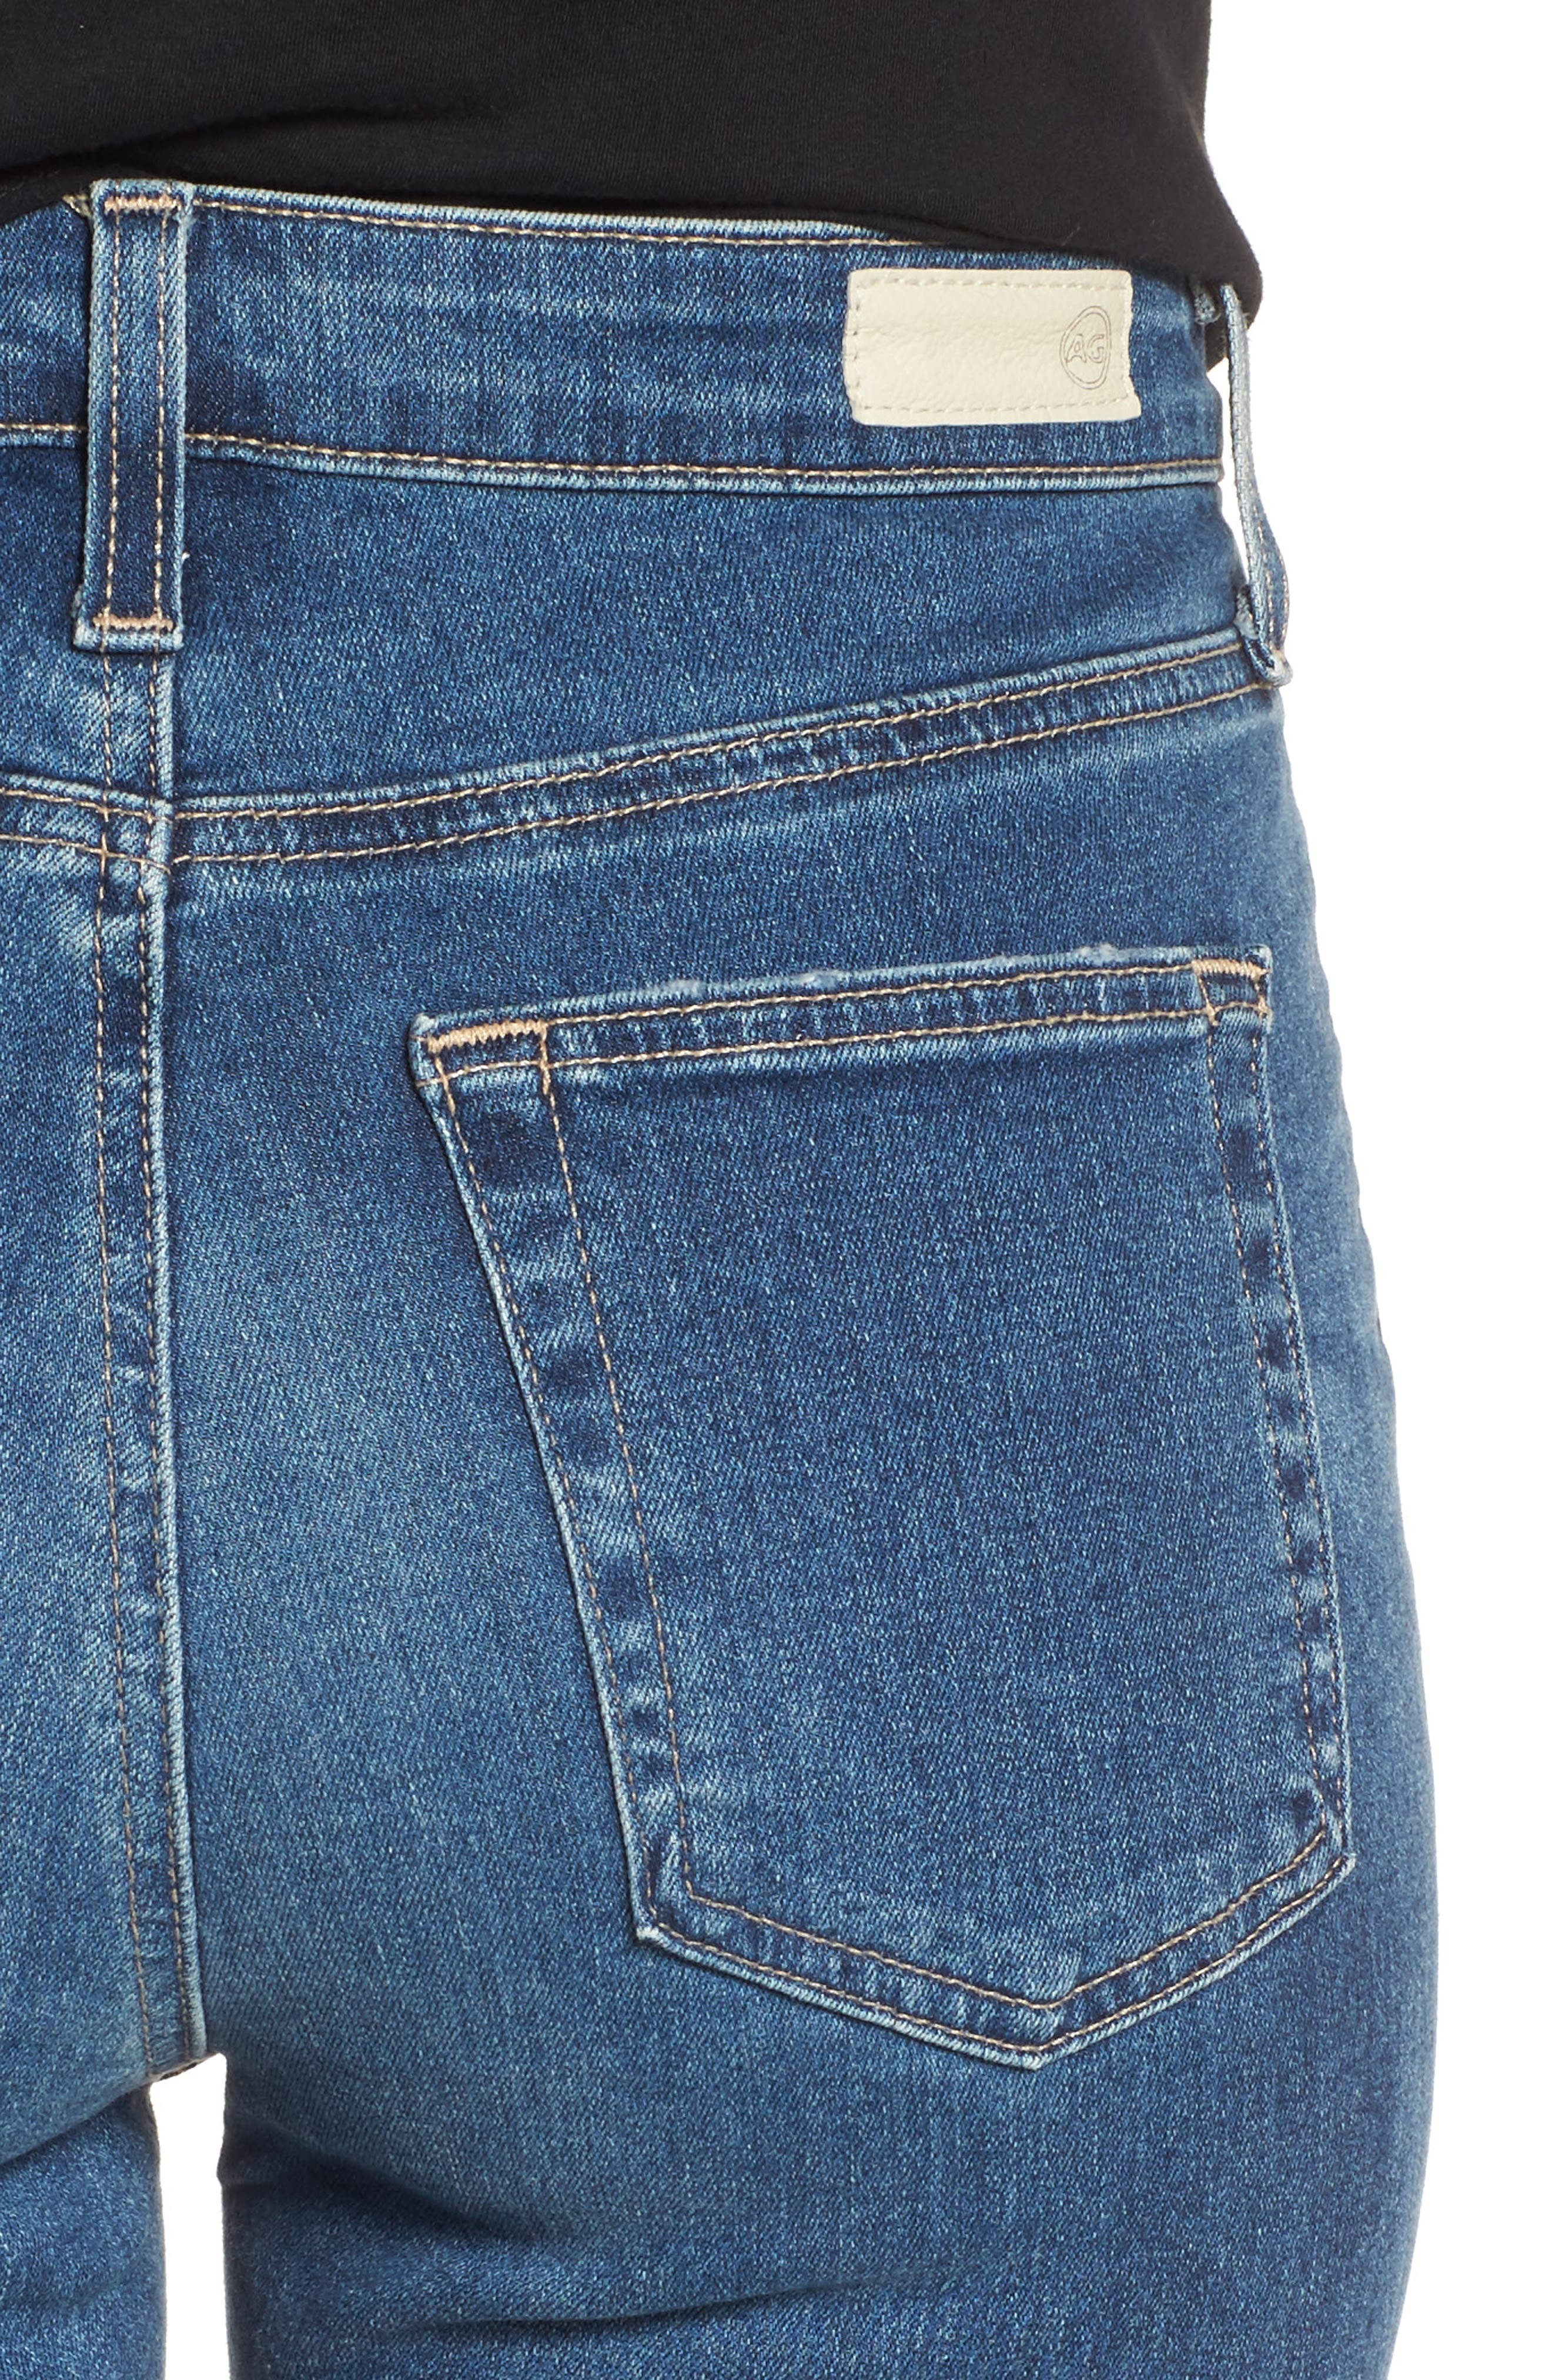 Mila Ankle Skinny Jeans,                             Alternate thumbnail 4, color,                             8 YEARS INFAMY